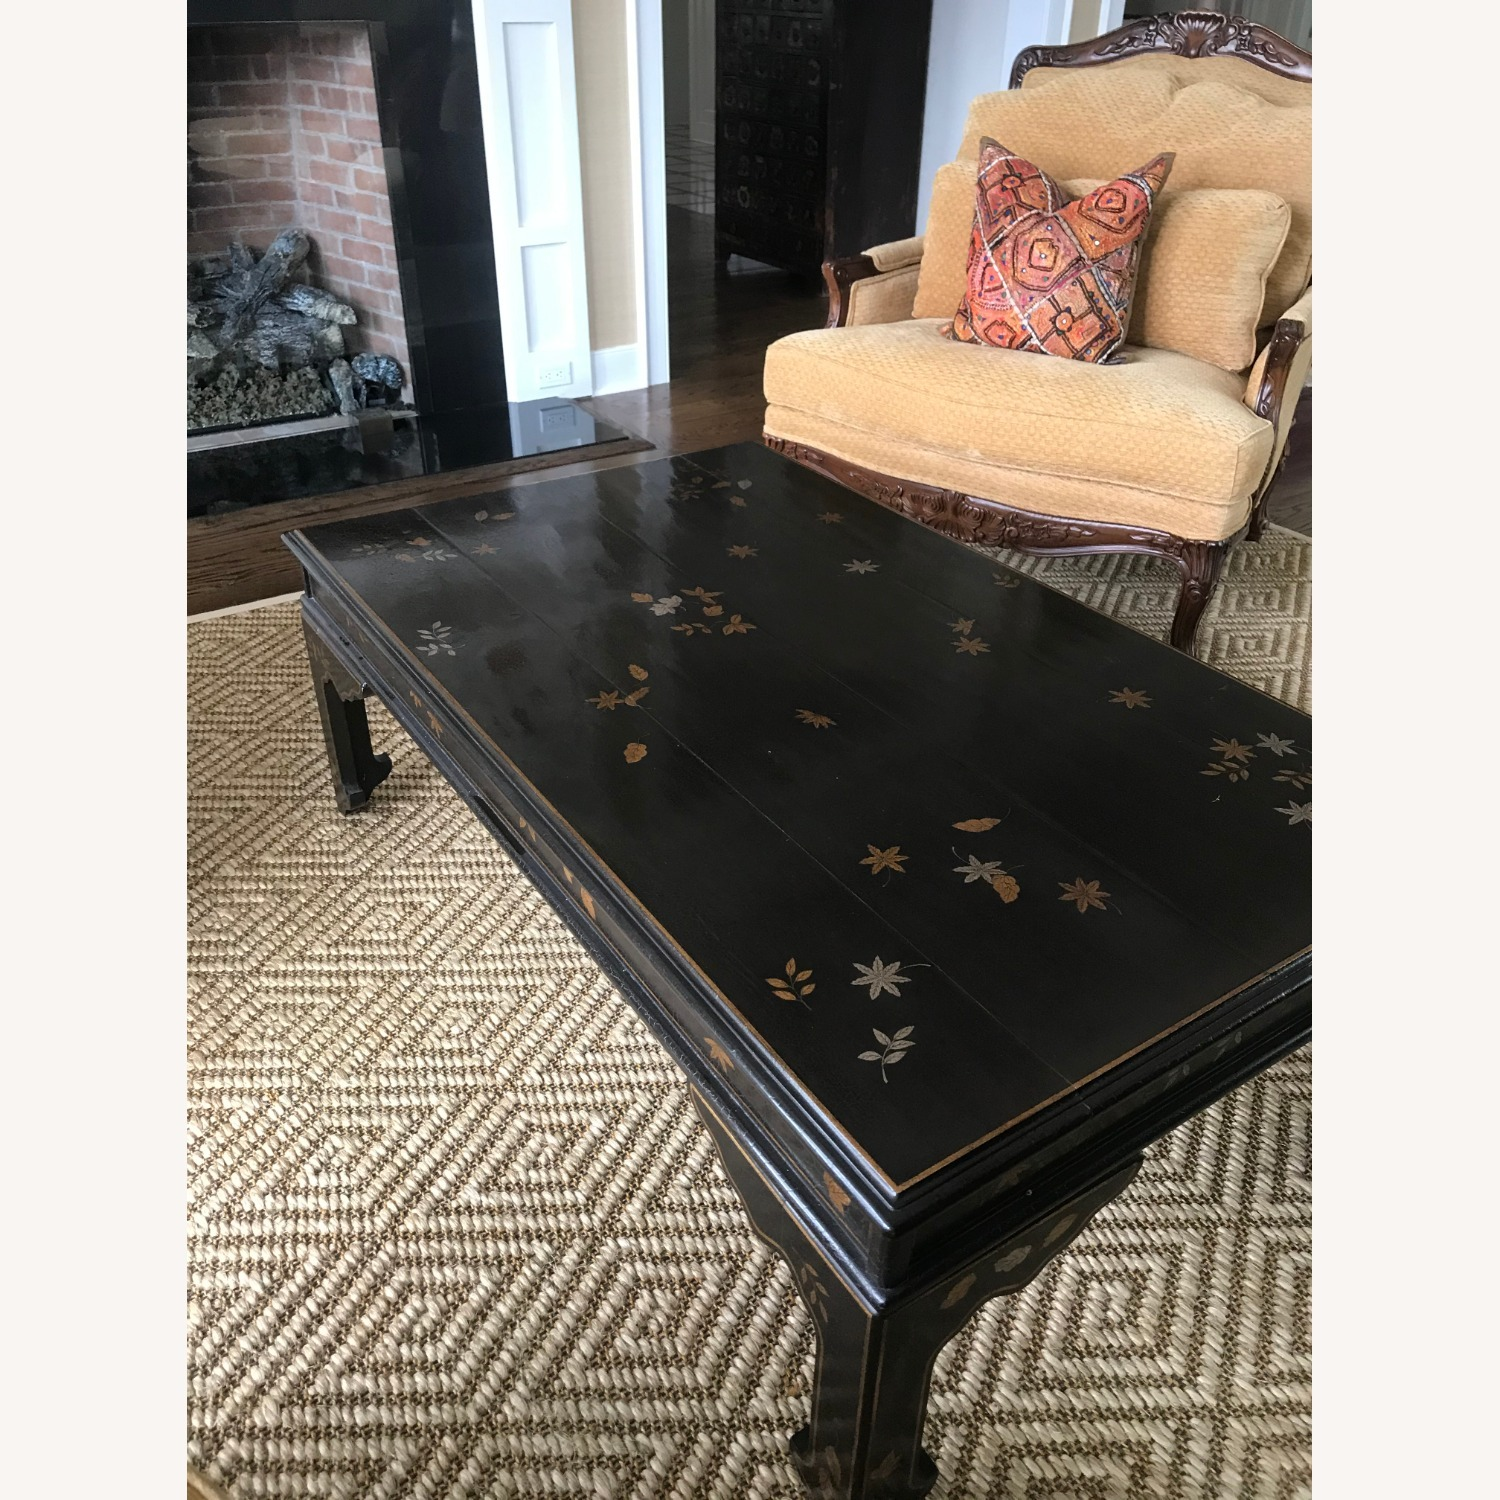 Black Coffee Table with Gold and Silver Leaves - image-1